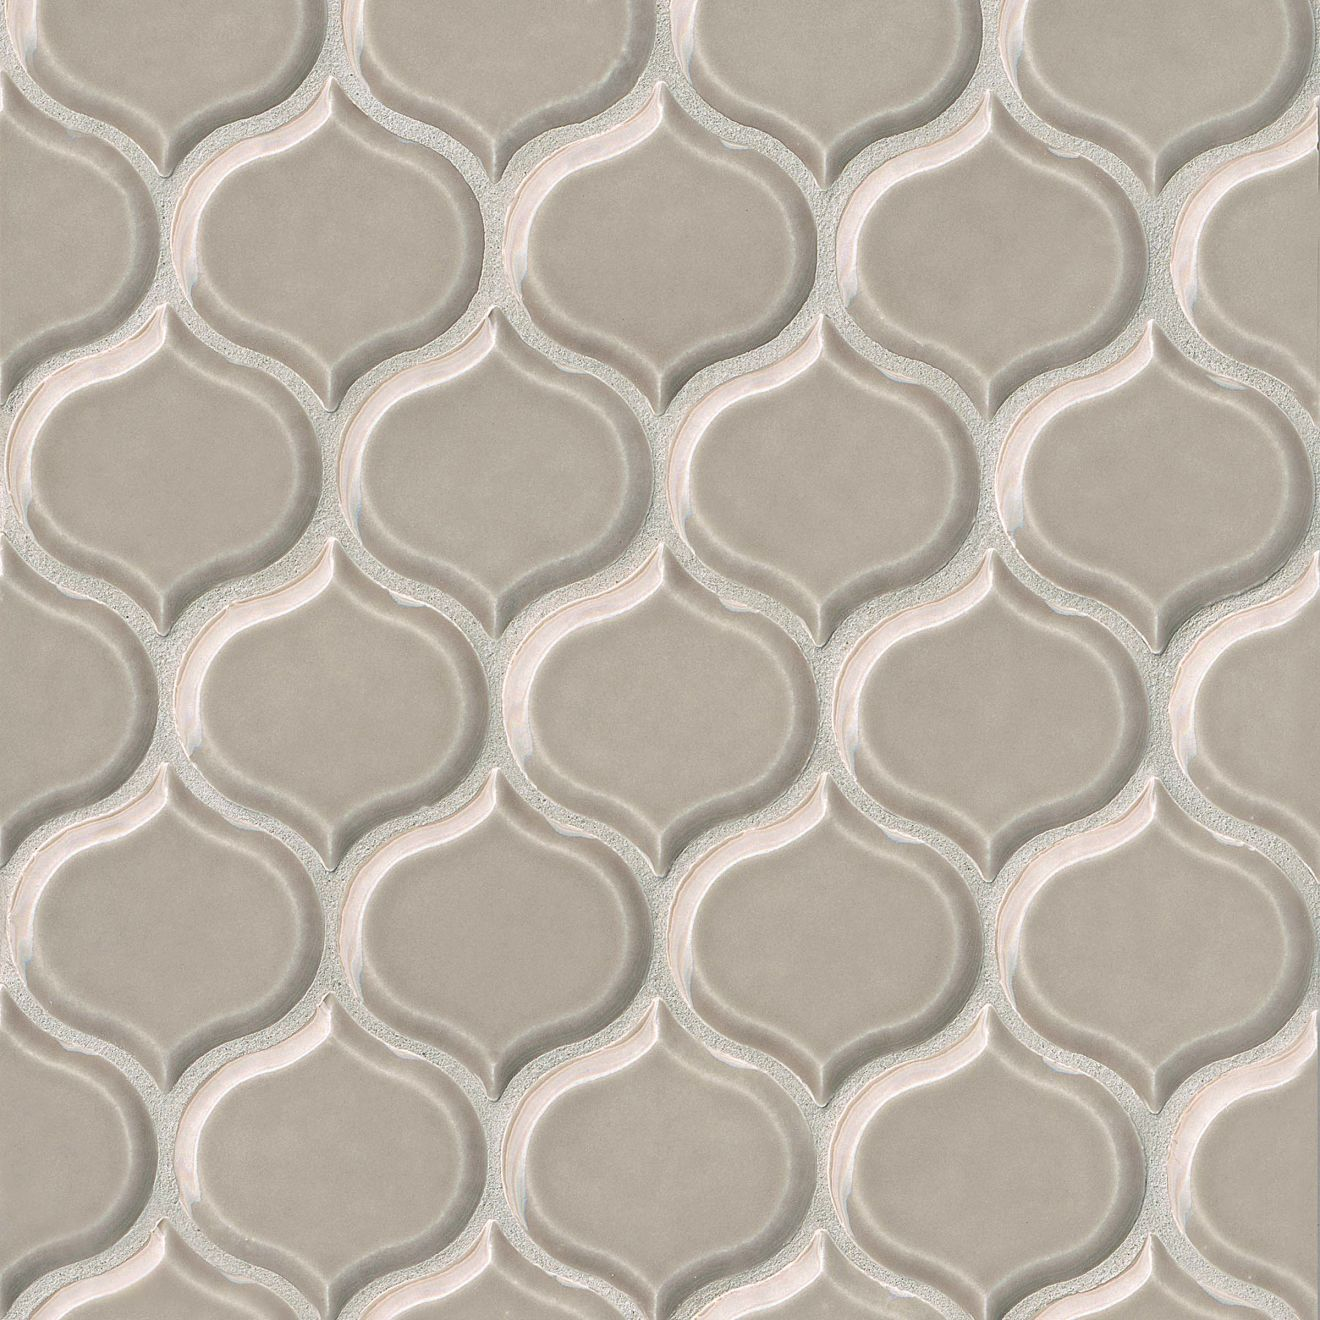 """Provincetown 3-1/16"""" x 2-7/8"""" Wall Mosaic in Dune Beige"""